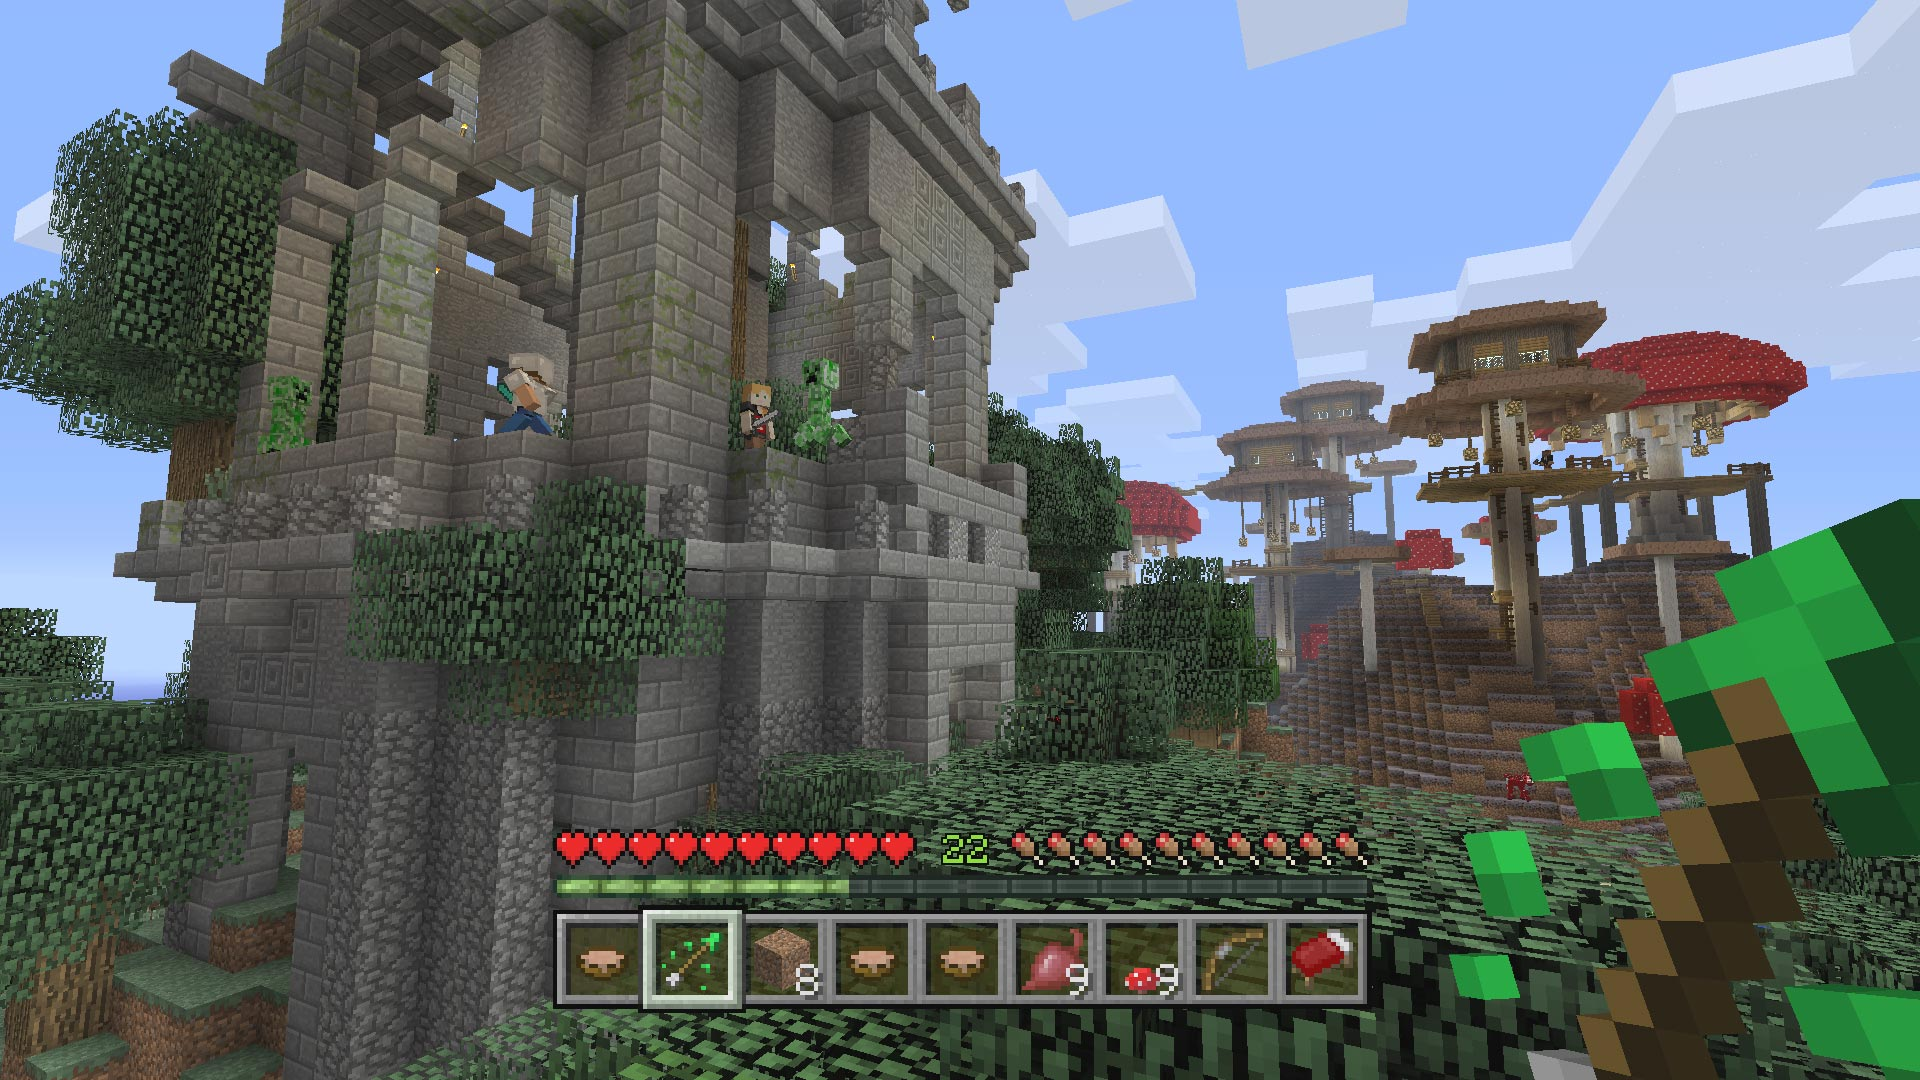 Minecraft Xbox: 5 Years Later